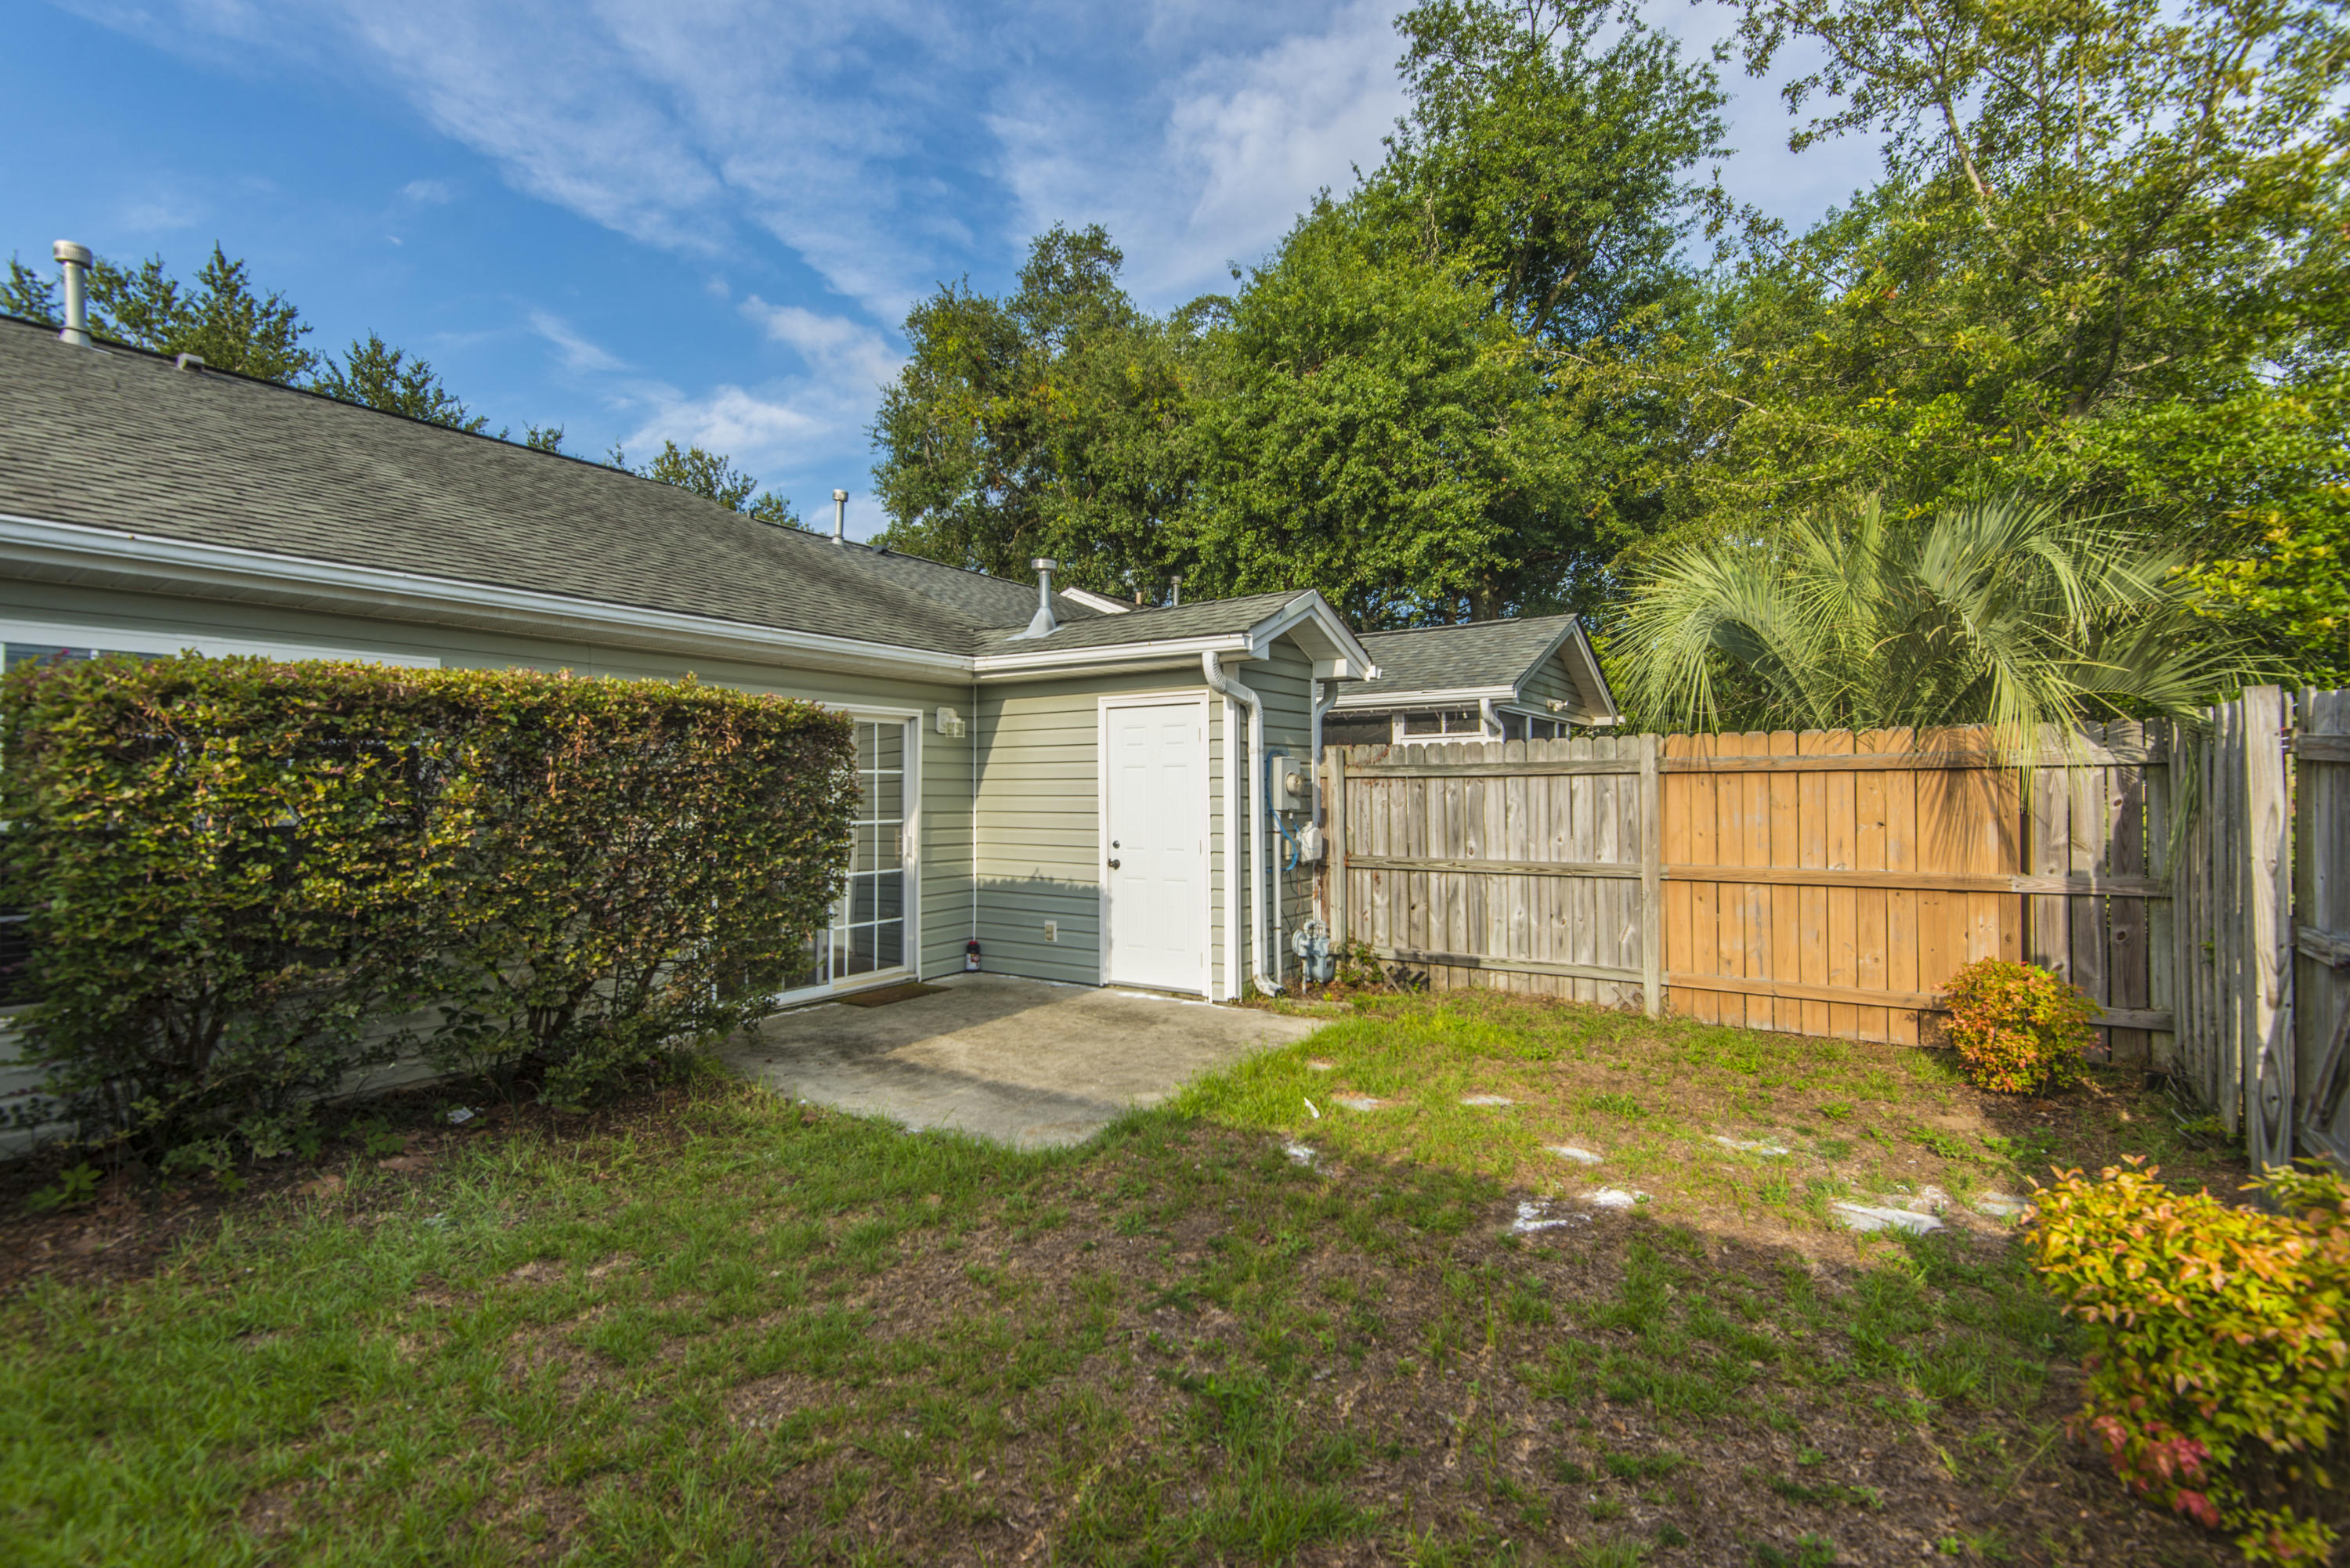 Meridian Place Homes For Sale - 1274 Apex, Charleston, SC - 0